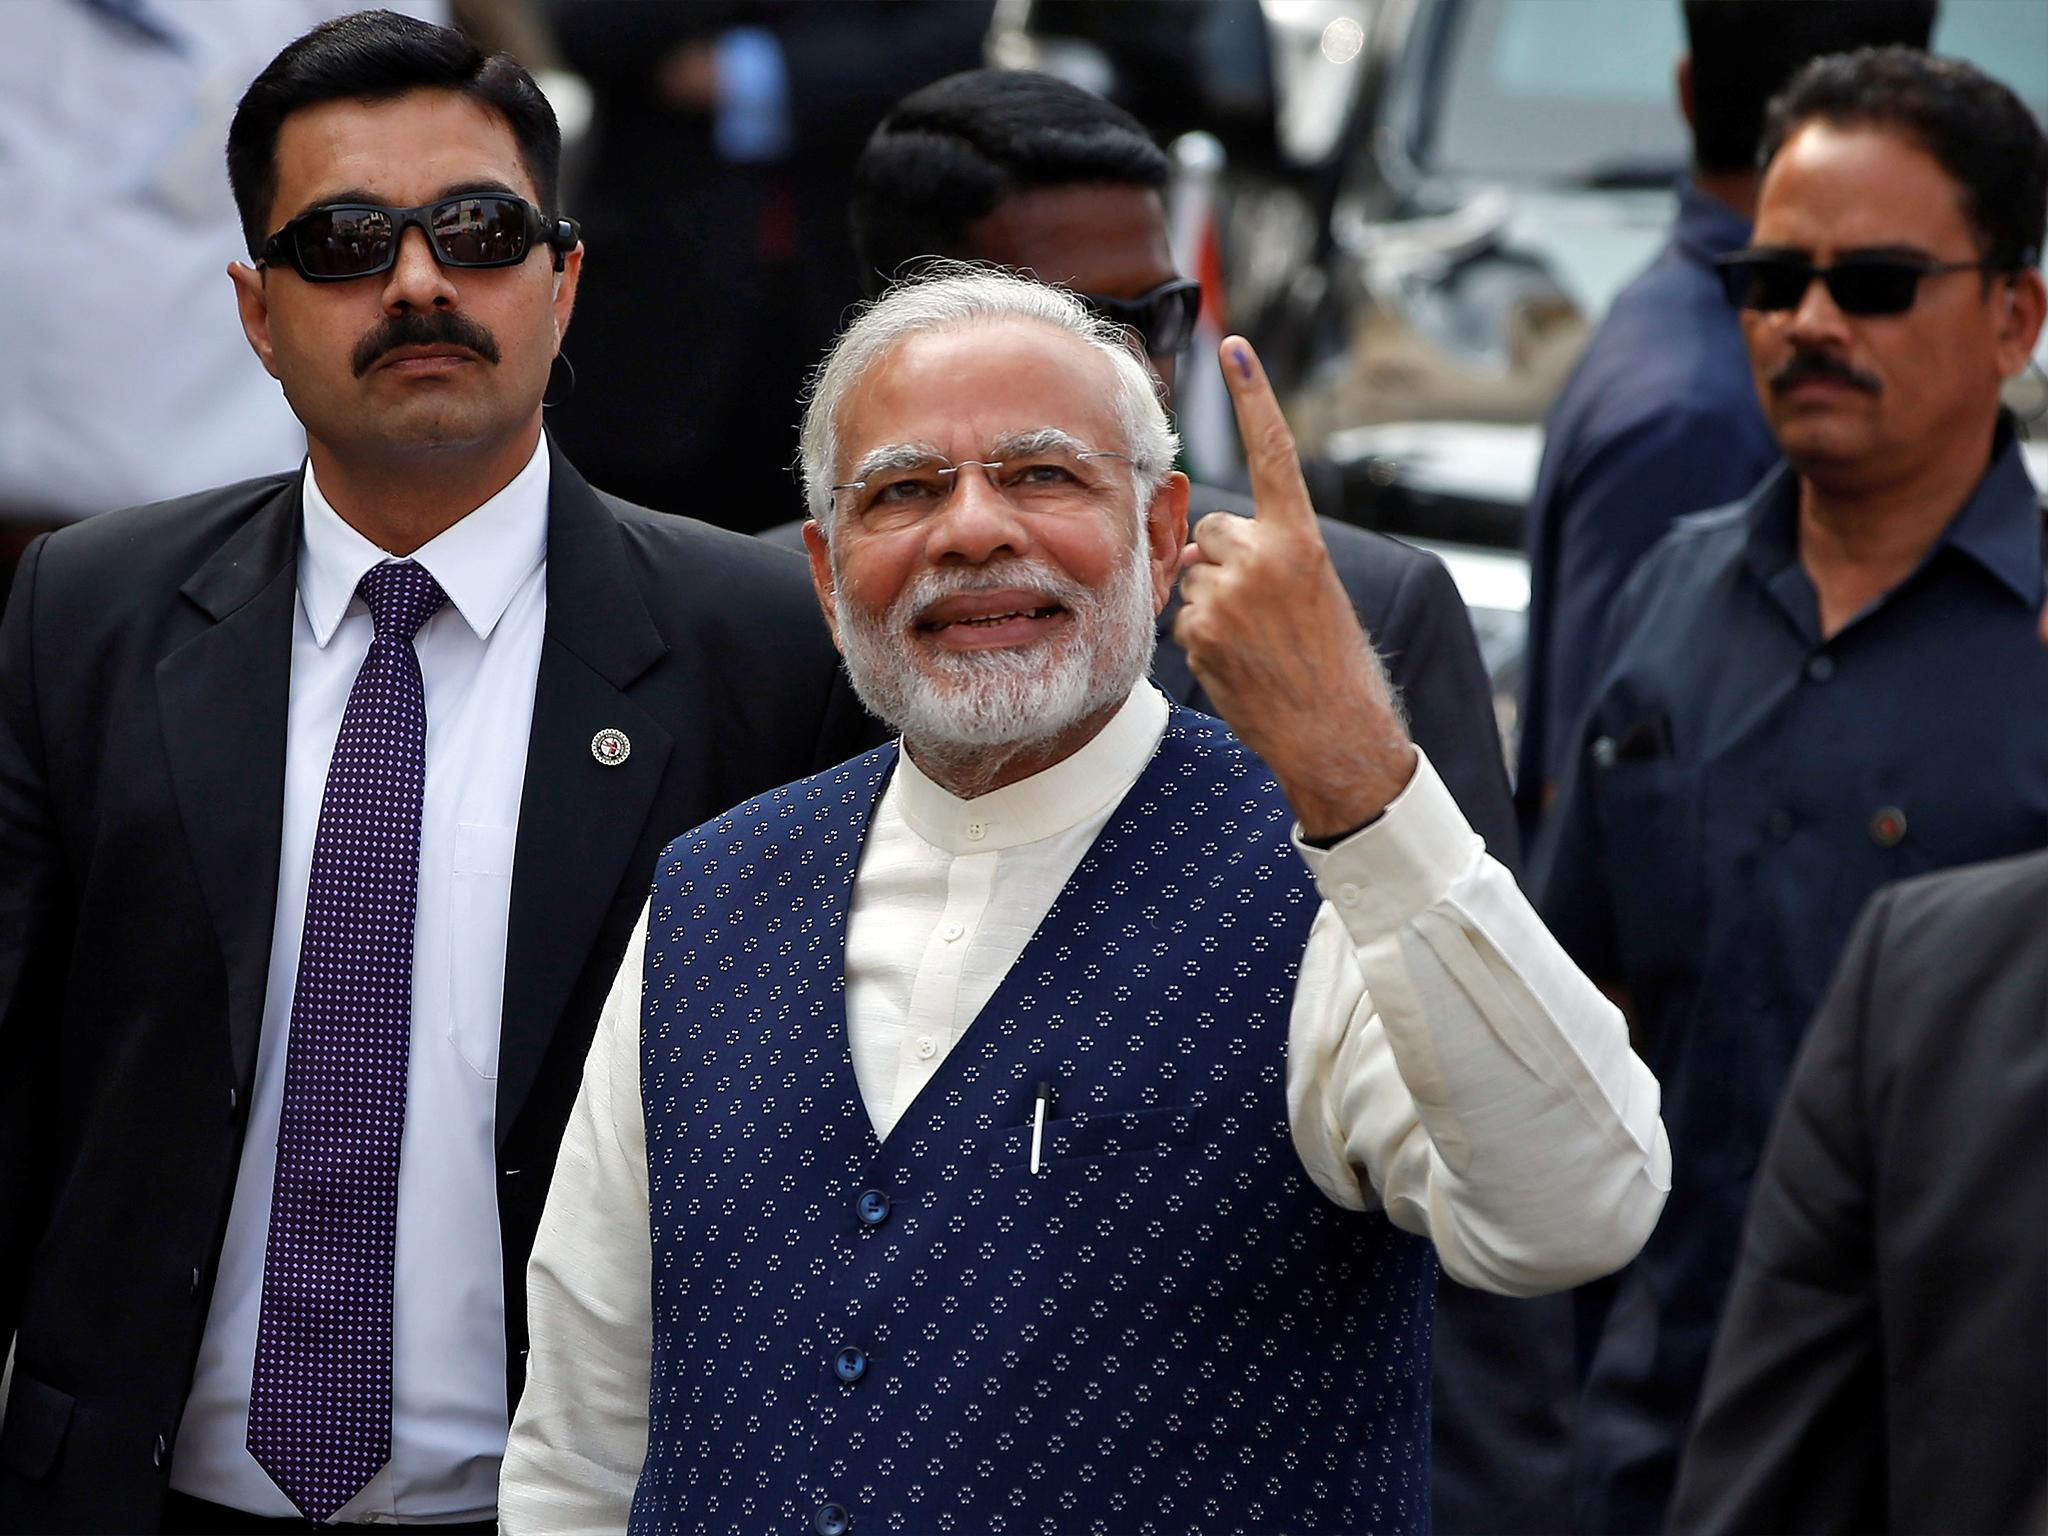 India state elections latest: Narendra Modi's ruling BJP party set for reduced majority in Gujarat